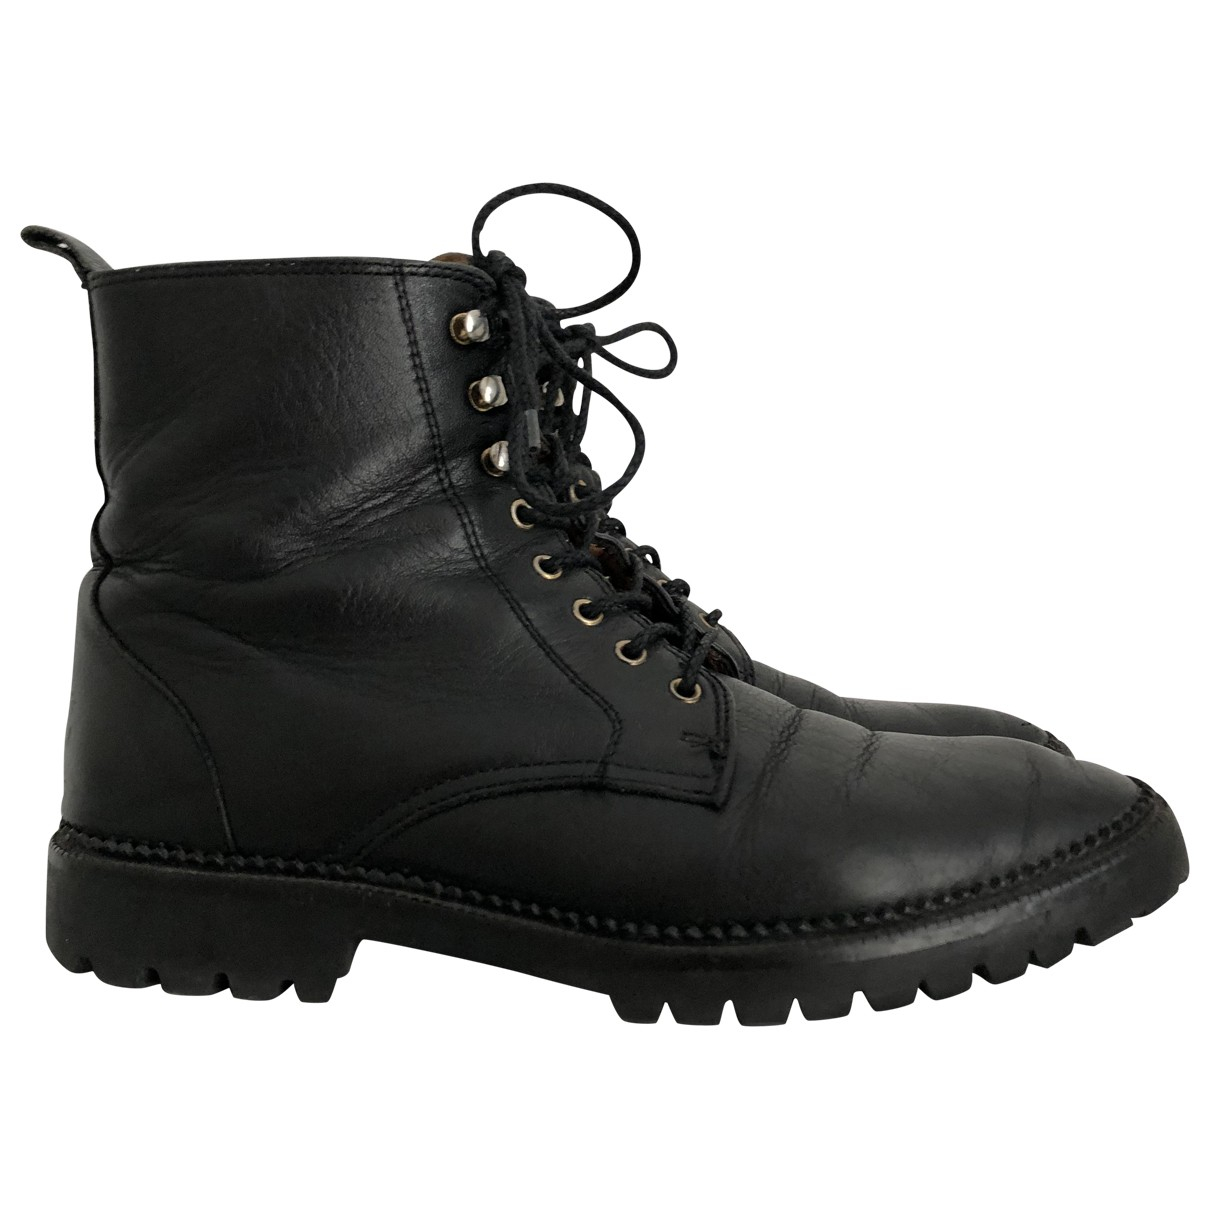 & Stories \N Black Leather Ankle boots for Women 36 EU